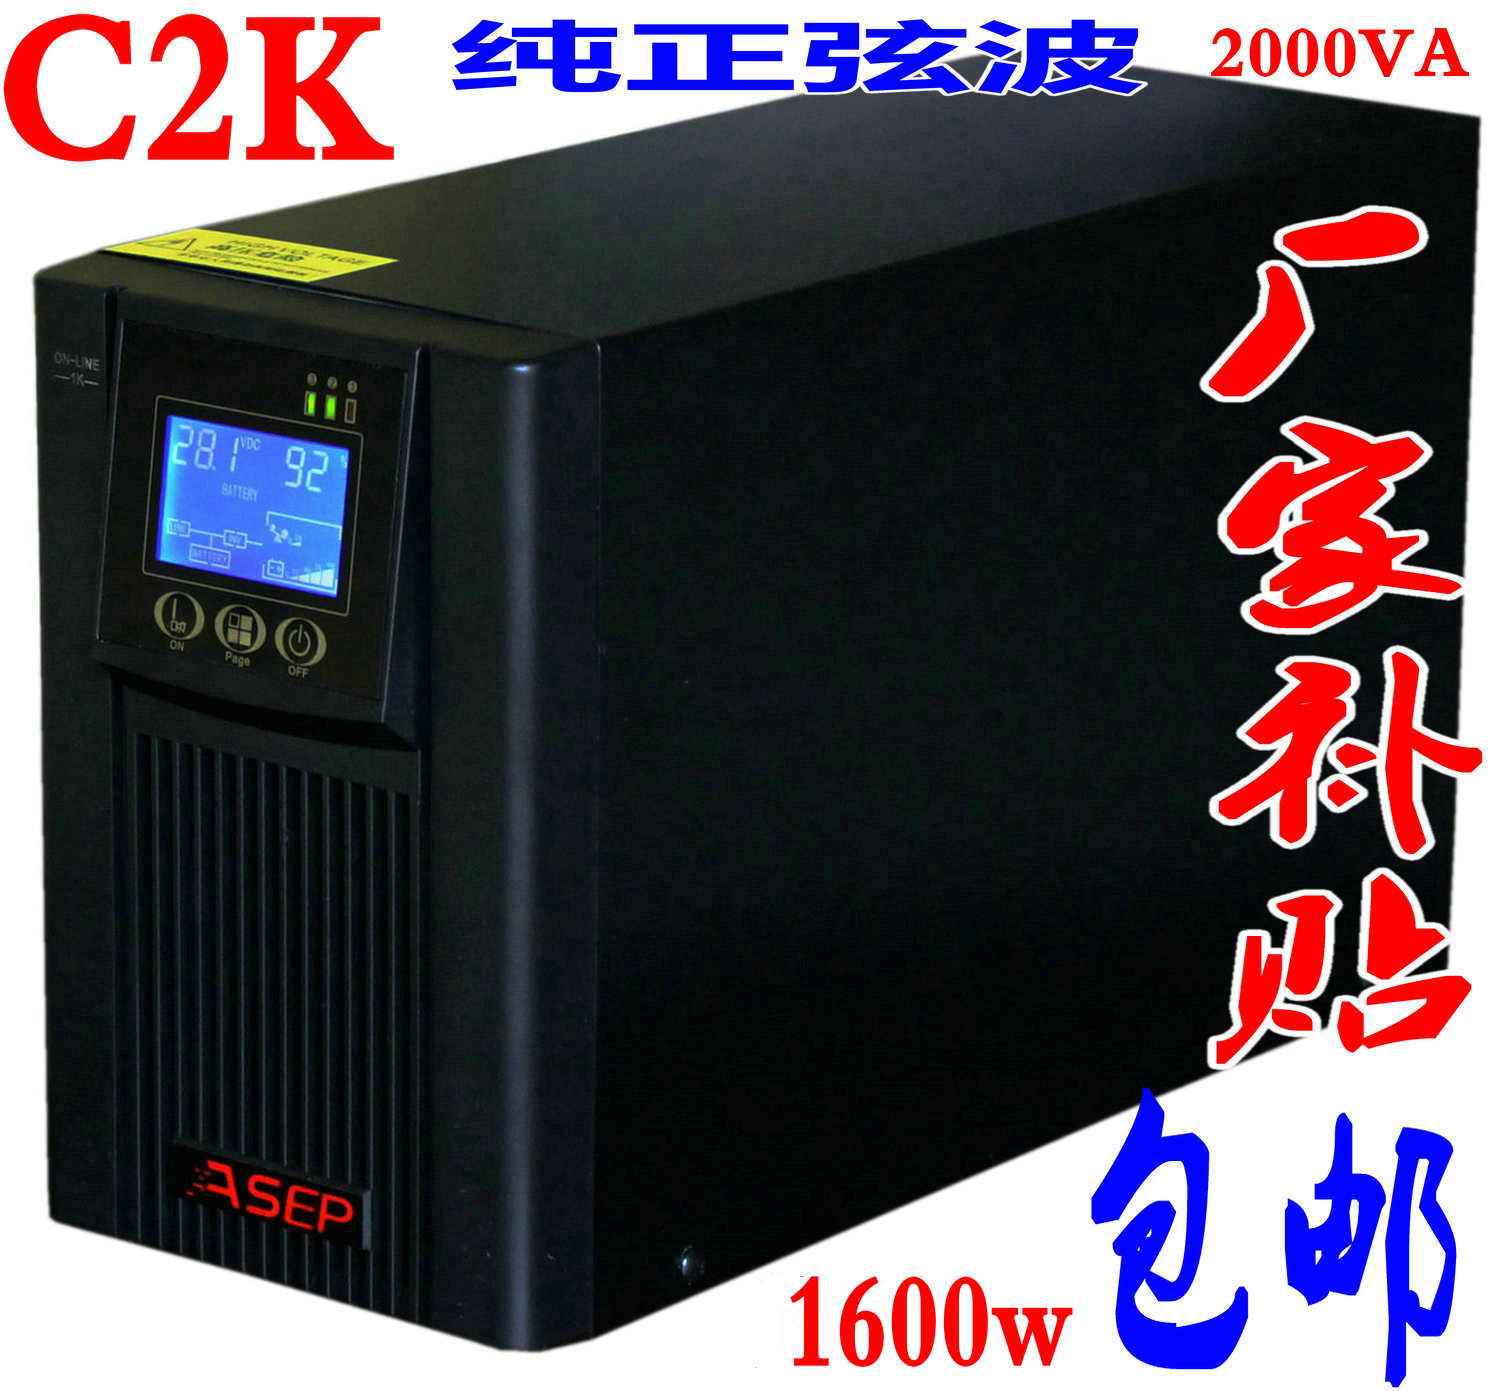 Shenzhen ASEP sine wave ups uninterruptible power supply C2K regulator 2000VA1500W computer server